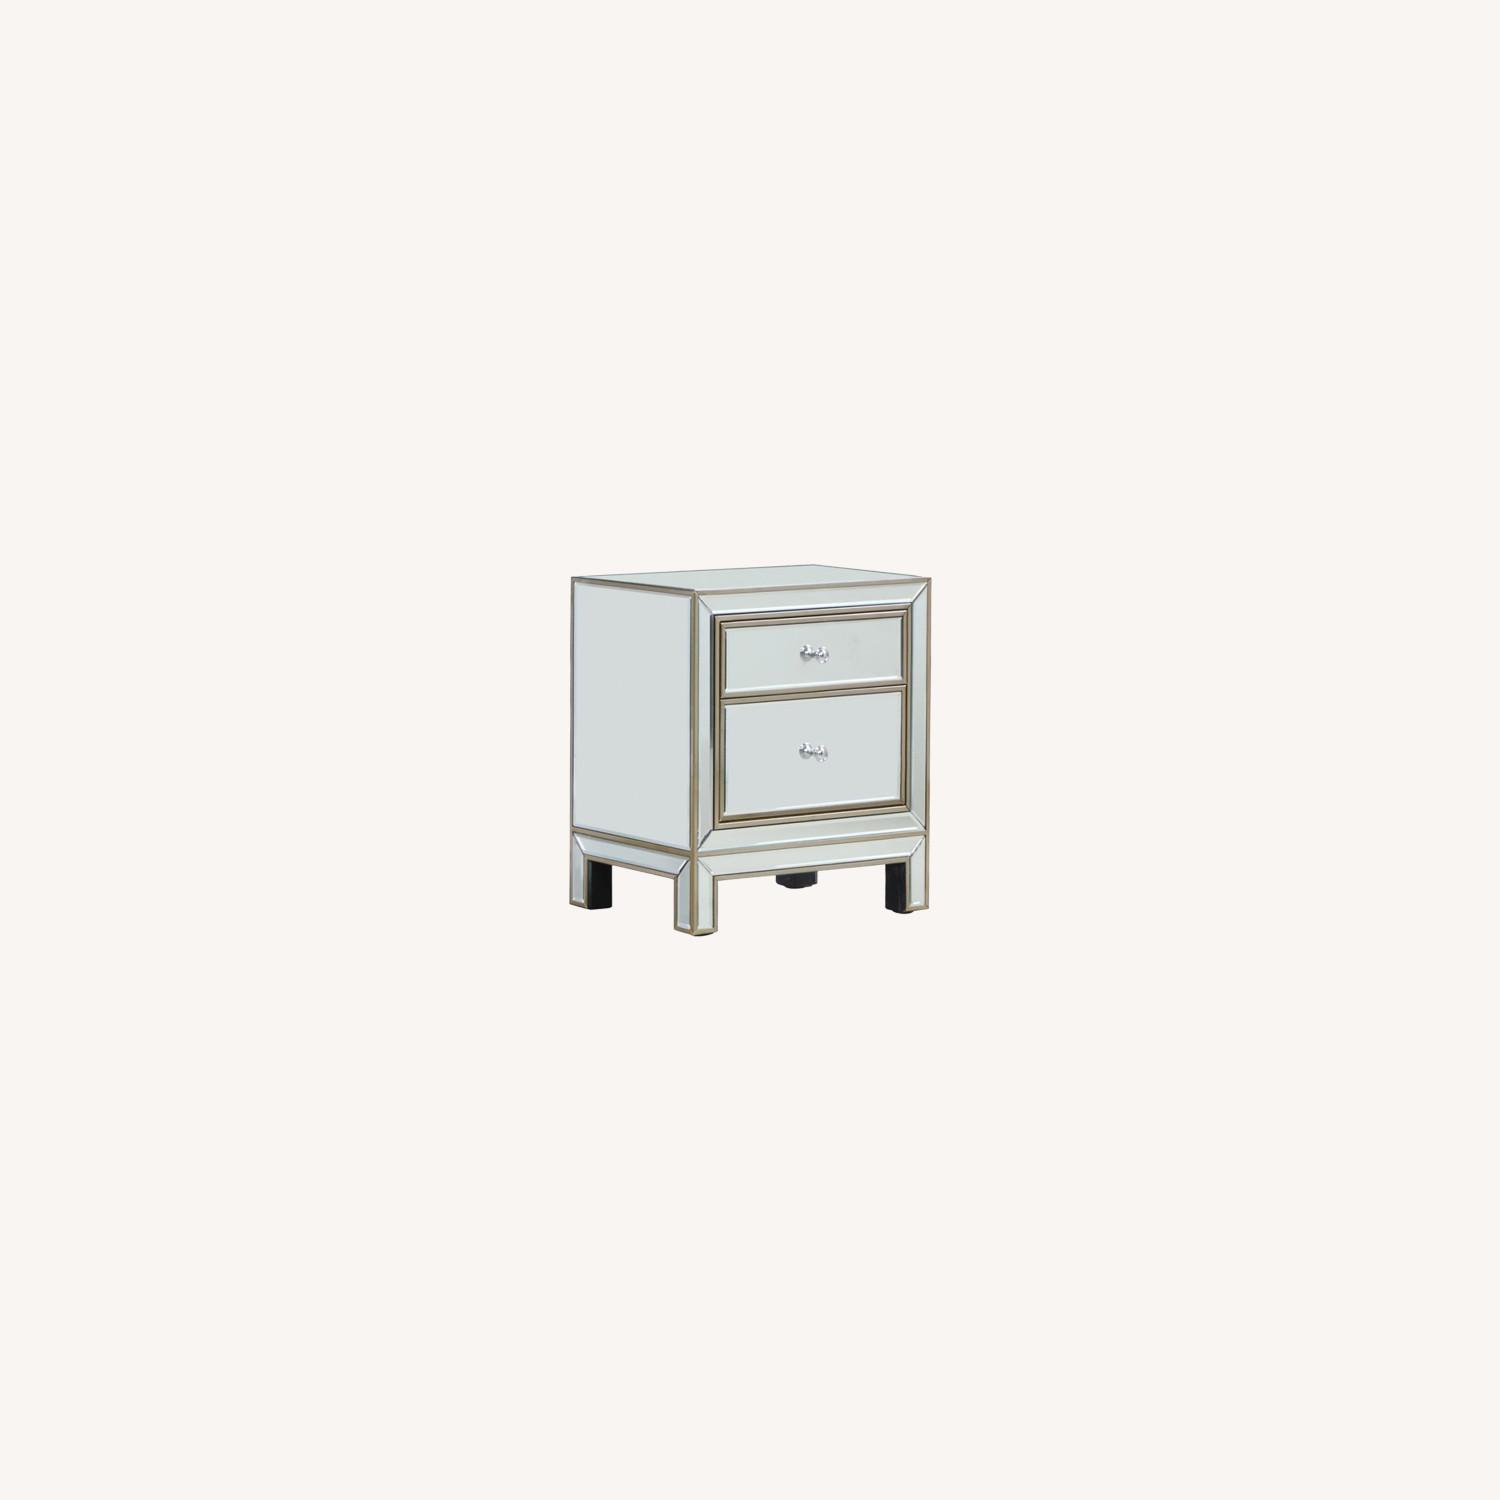 End Table In Silver & Champagne Finish - image-4